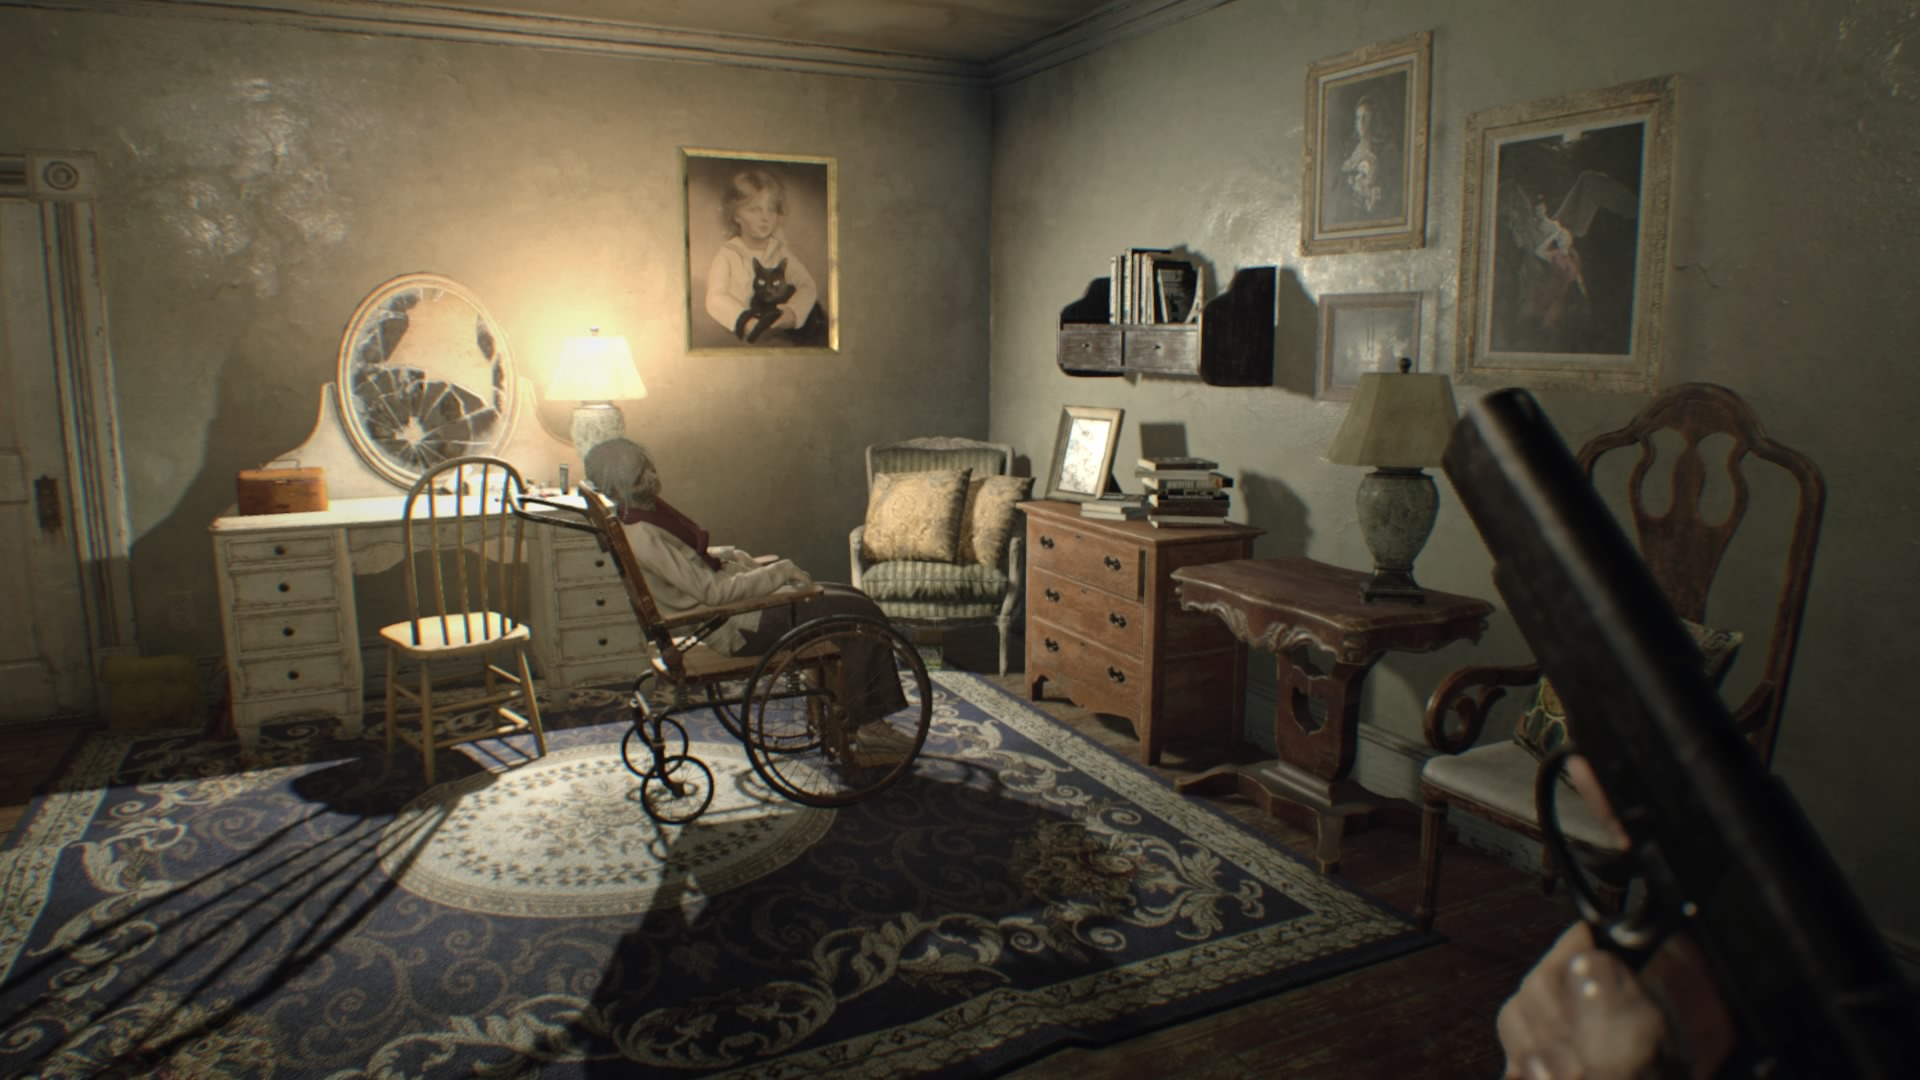 Resident Evil 7 Guide And Walkthrough 4 1 Dissection Room Master Bedroom Lucas Room Attic